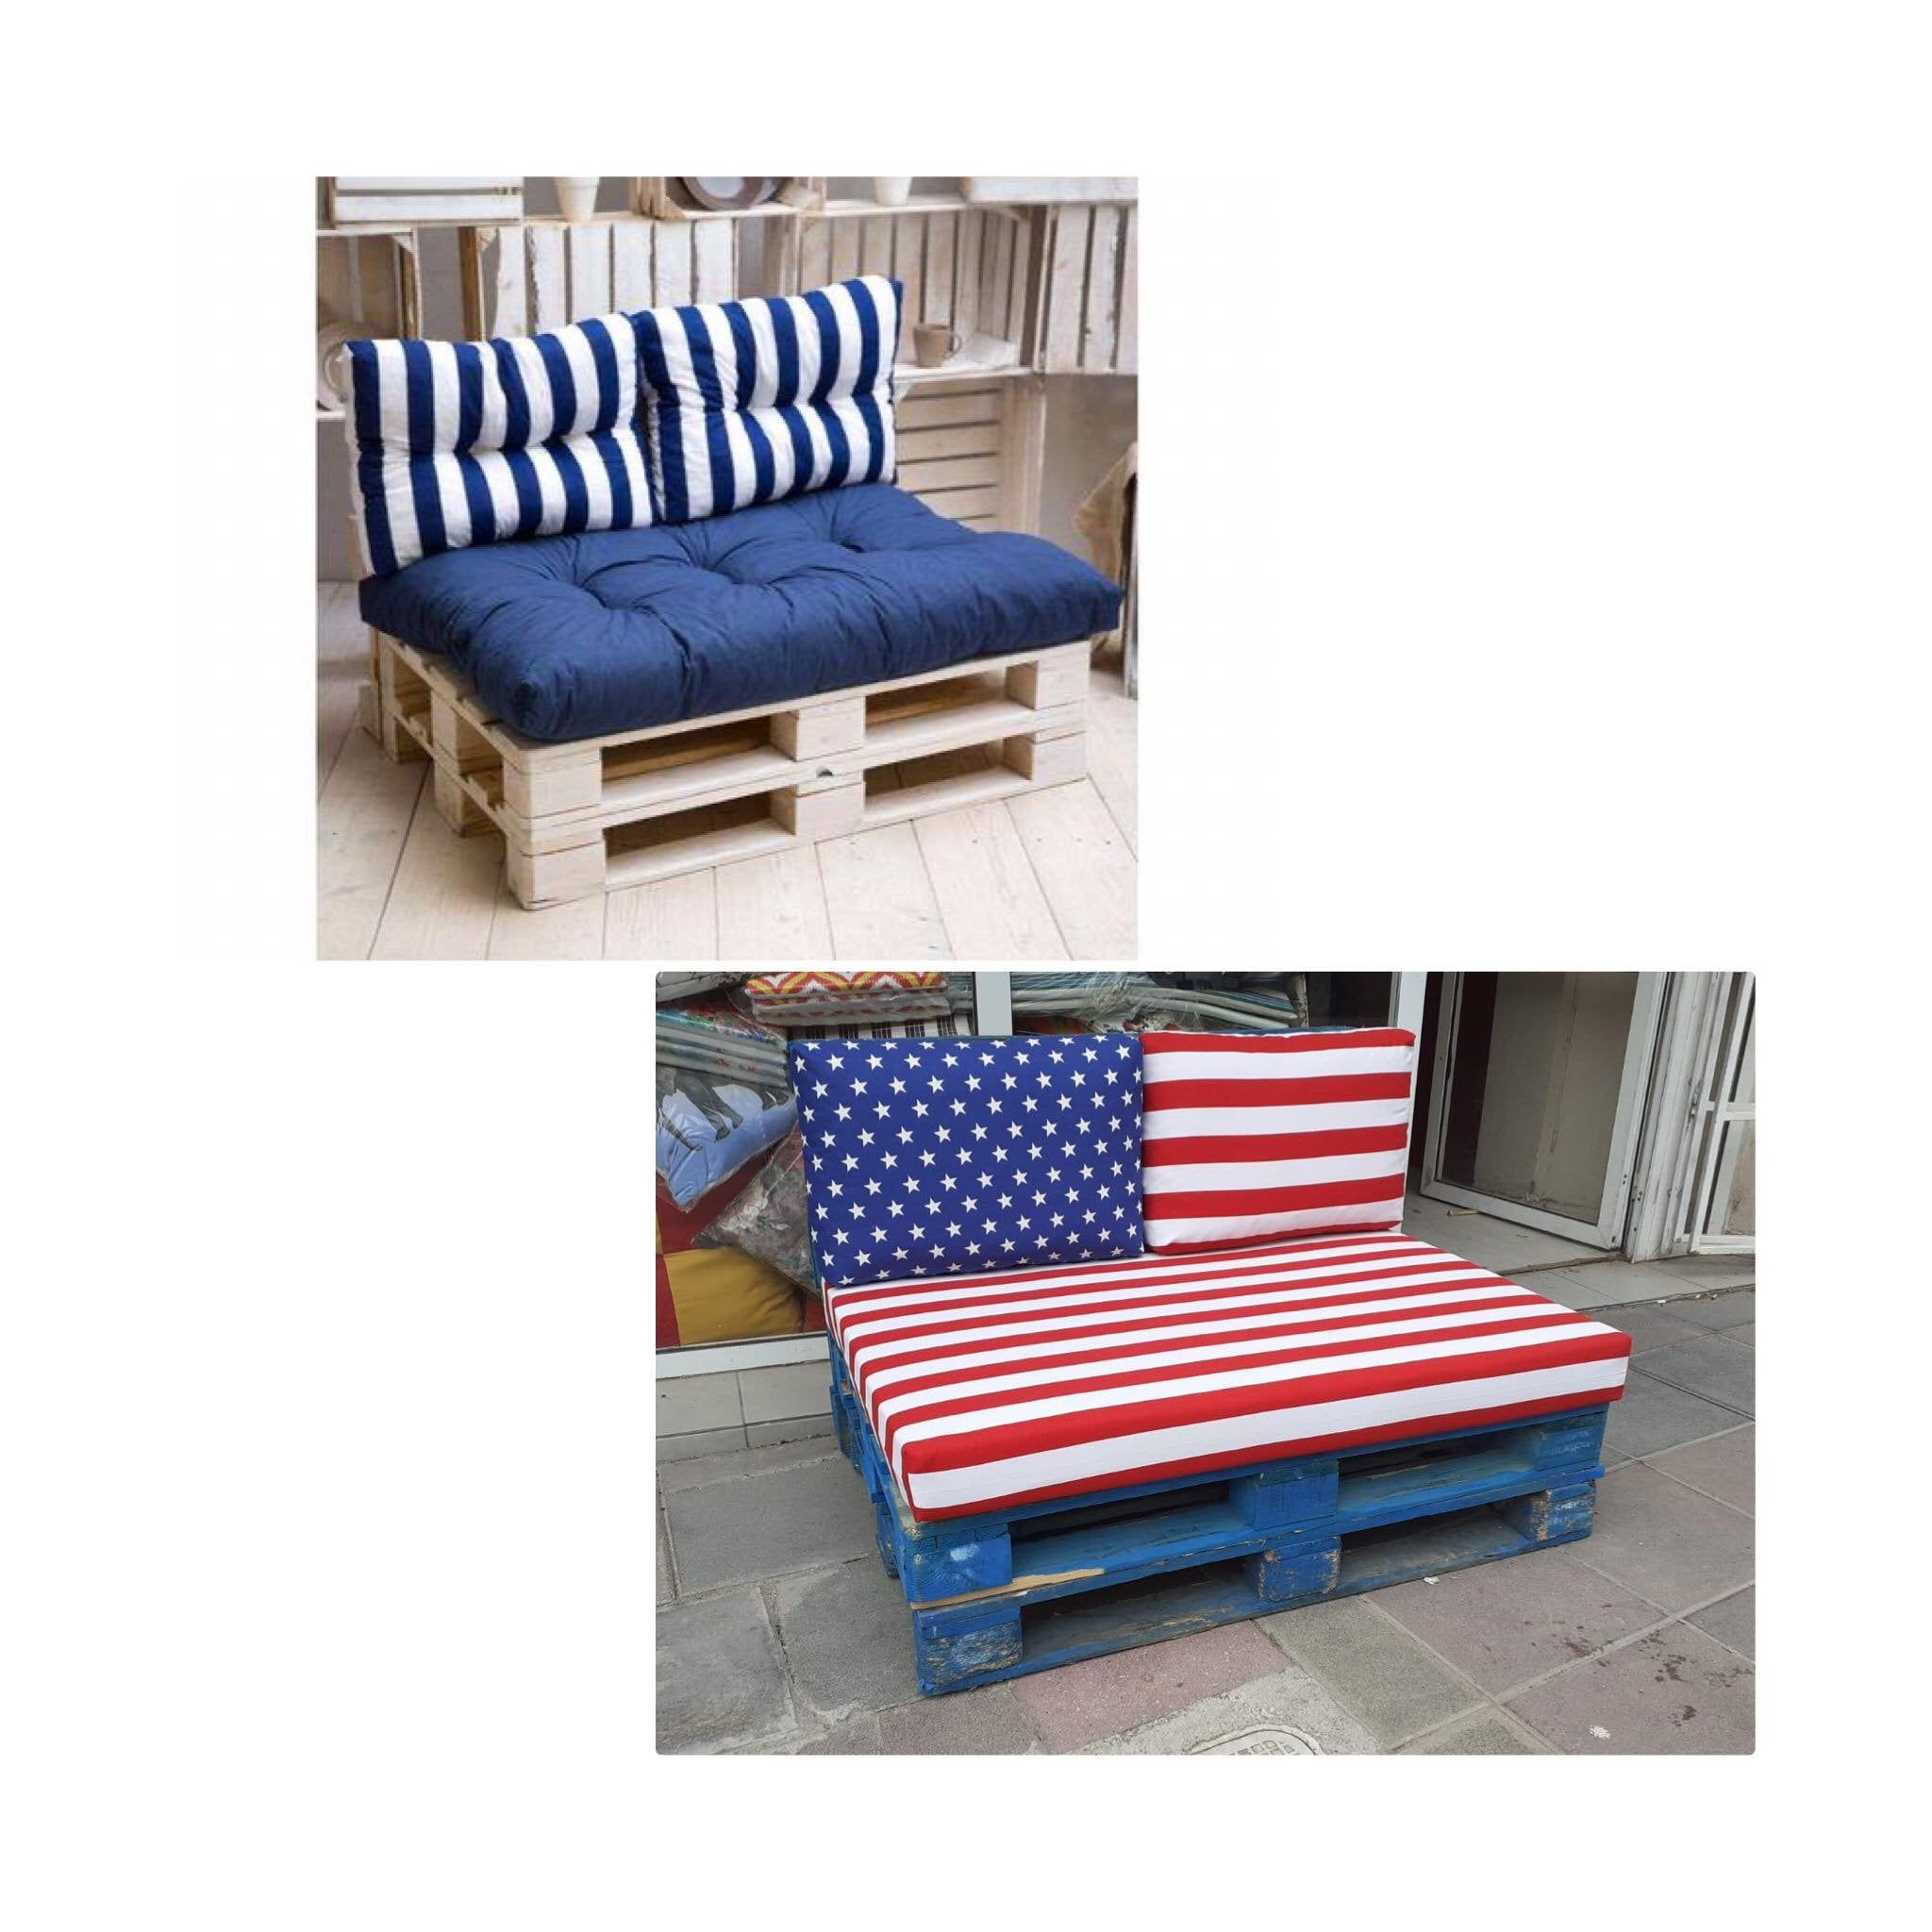 Pallet Cushions With Water Resistant Fabric Customizable Etsy In 2020 Pallet Cushions Cushions Palette Bed